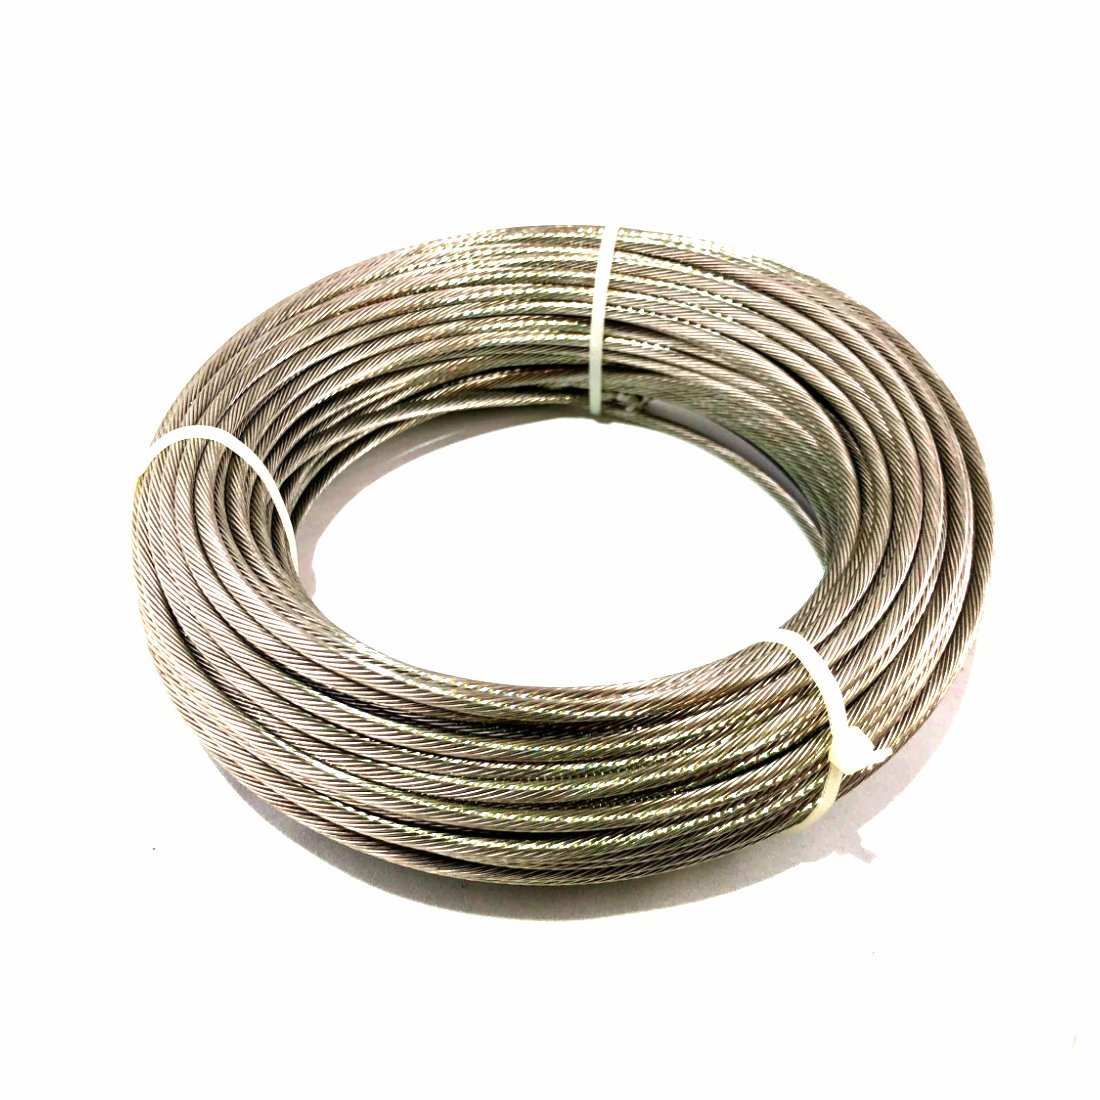 1/8 Steel Cable 1×19 Strand - T316 'Marine Grade' Stainless - 100′ Feet Generic TC316